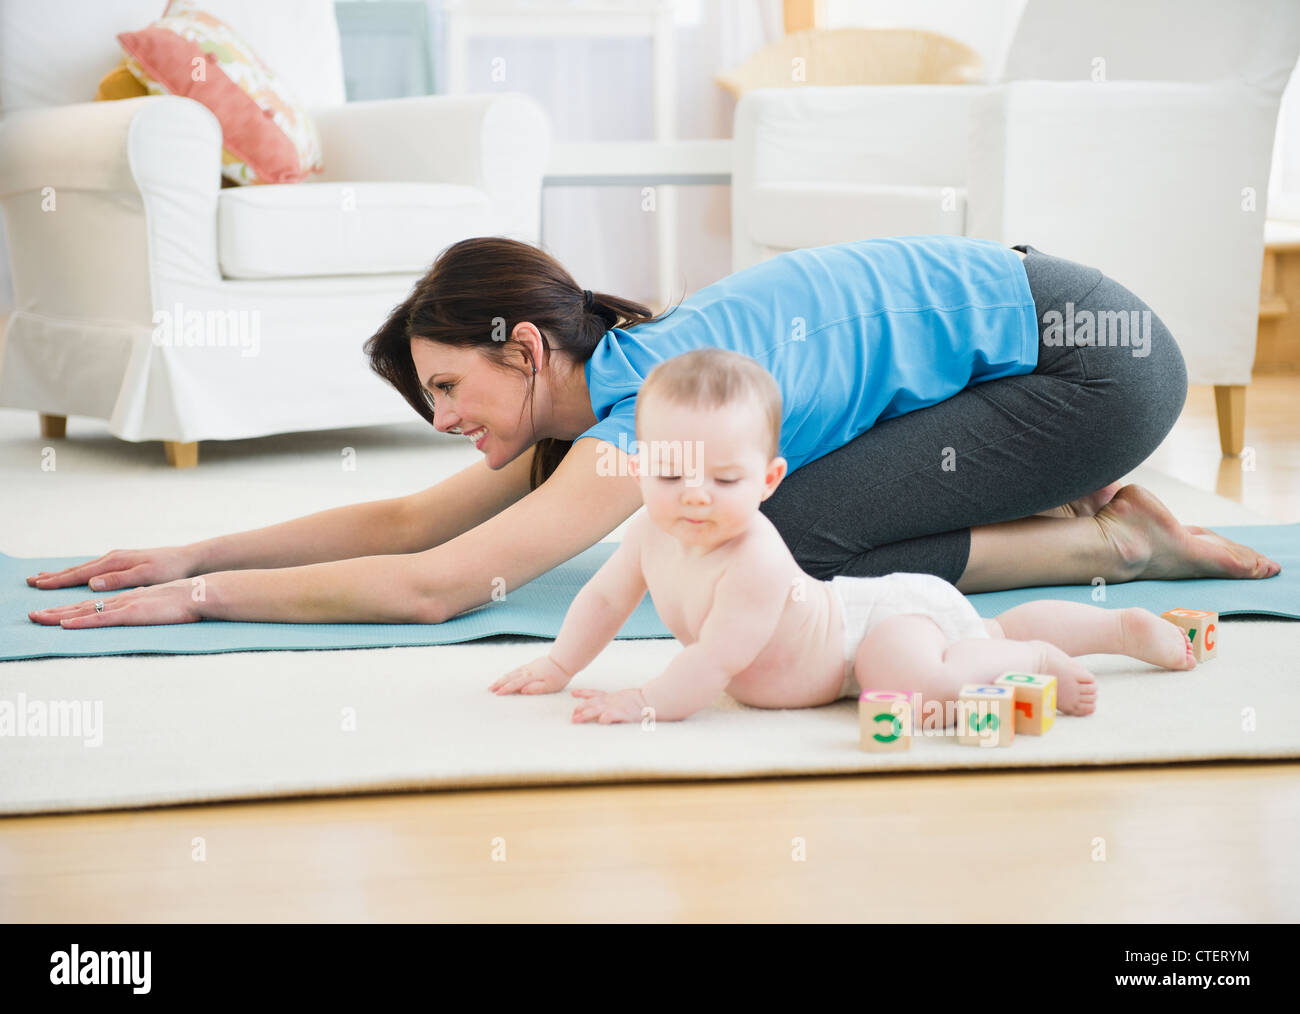 USA, New Jersey, Jersey City, Mother with baby daughter (6-11 months) practicing yoga - Stock Image